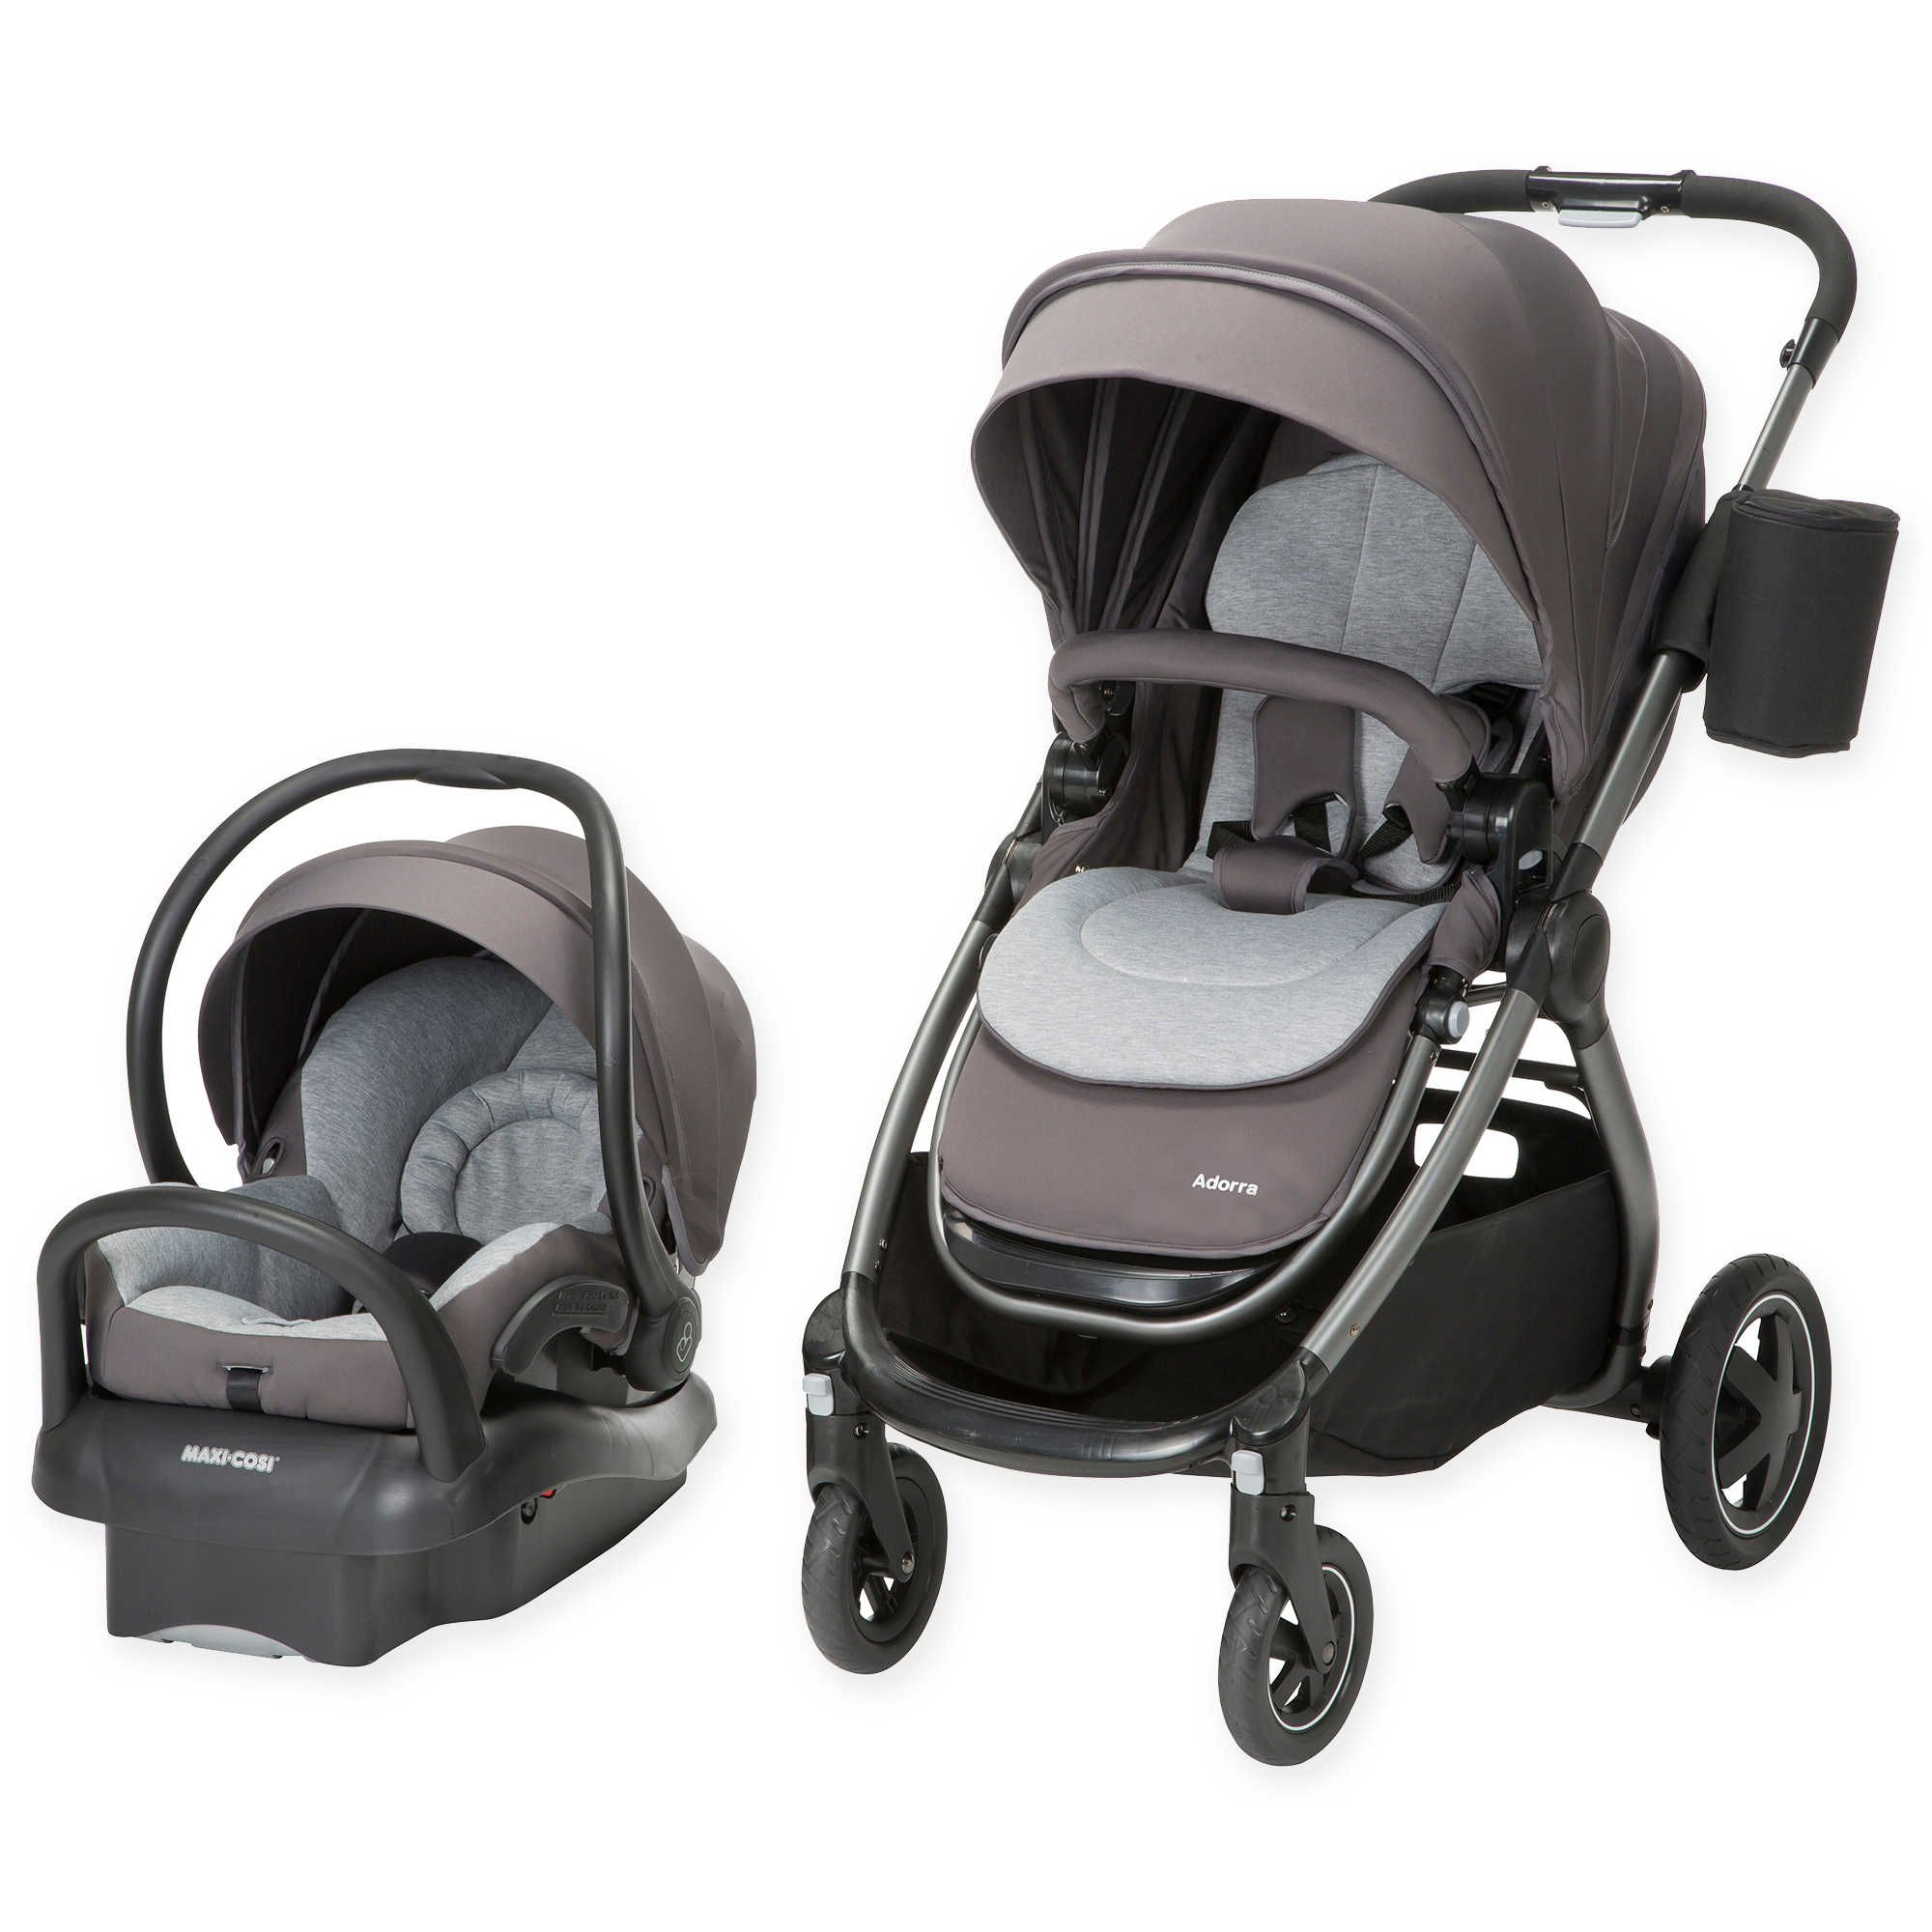 MaxiCosi® Adorra Travel System in Loyal Grey Baby car